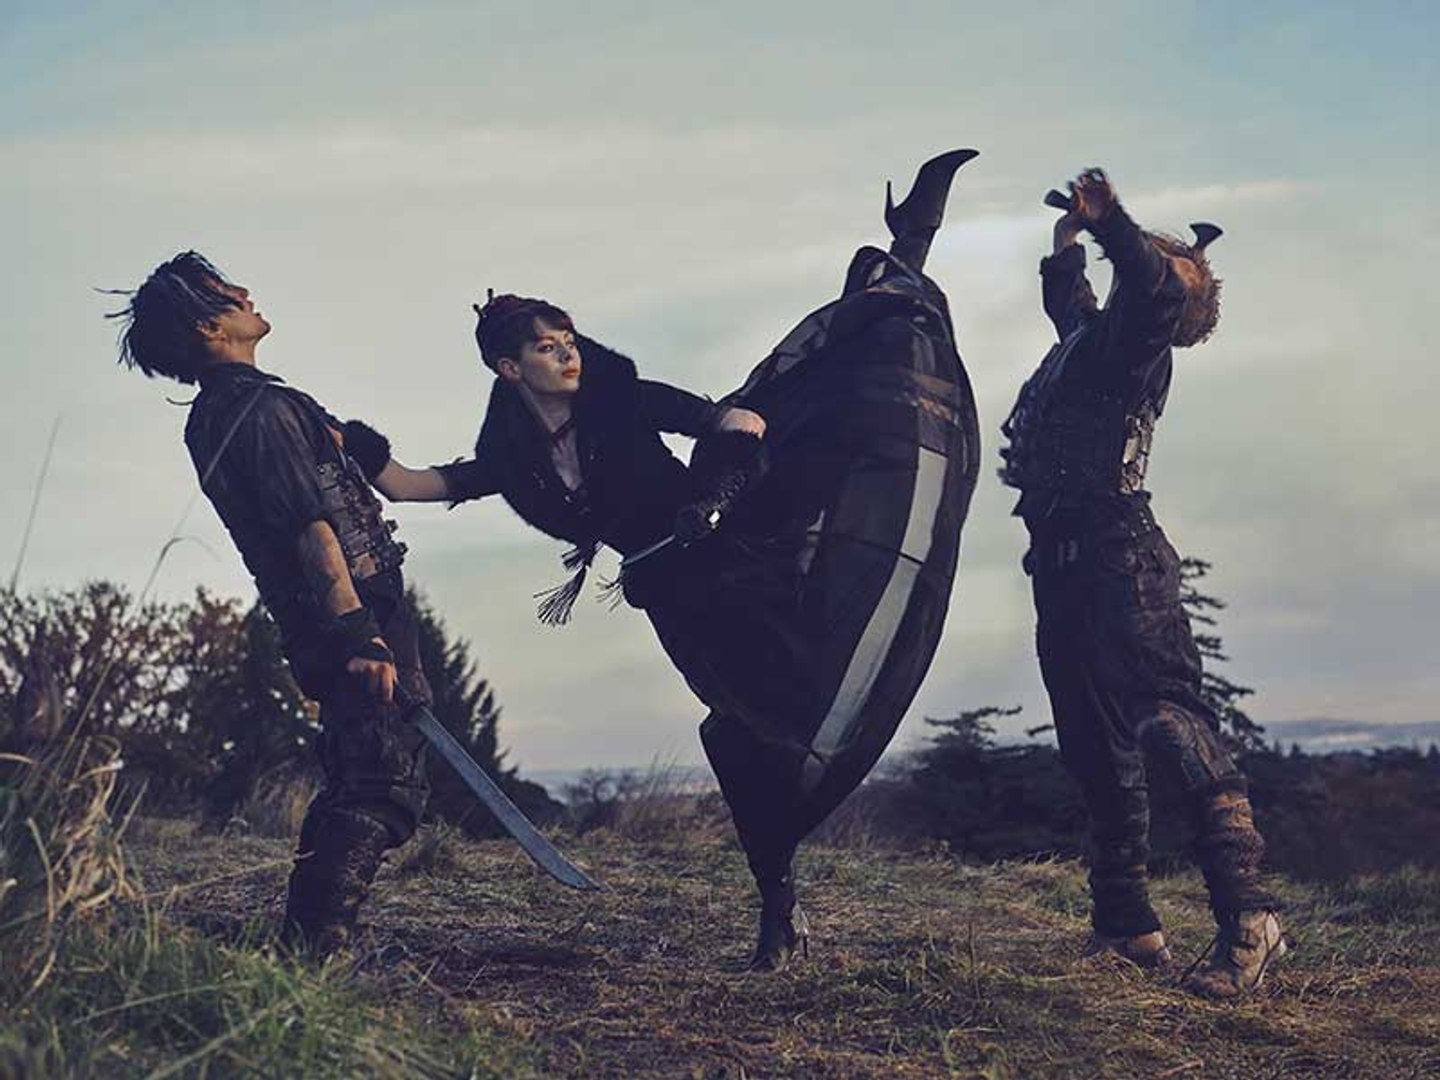 Into The Badlands Season 2 Episode 5 Full Video English Subtitles Video Dailymotion